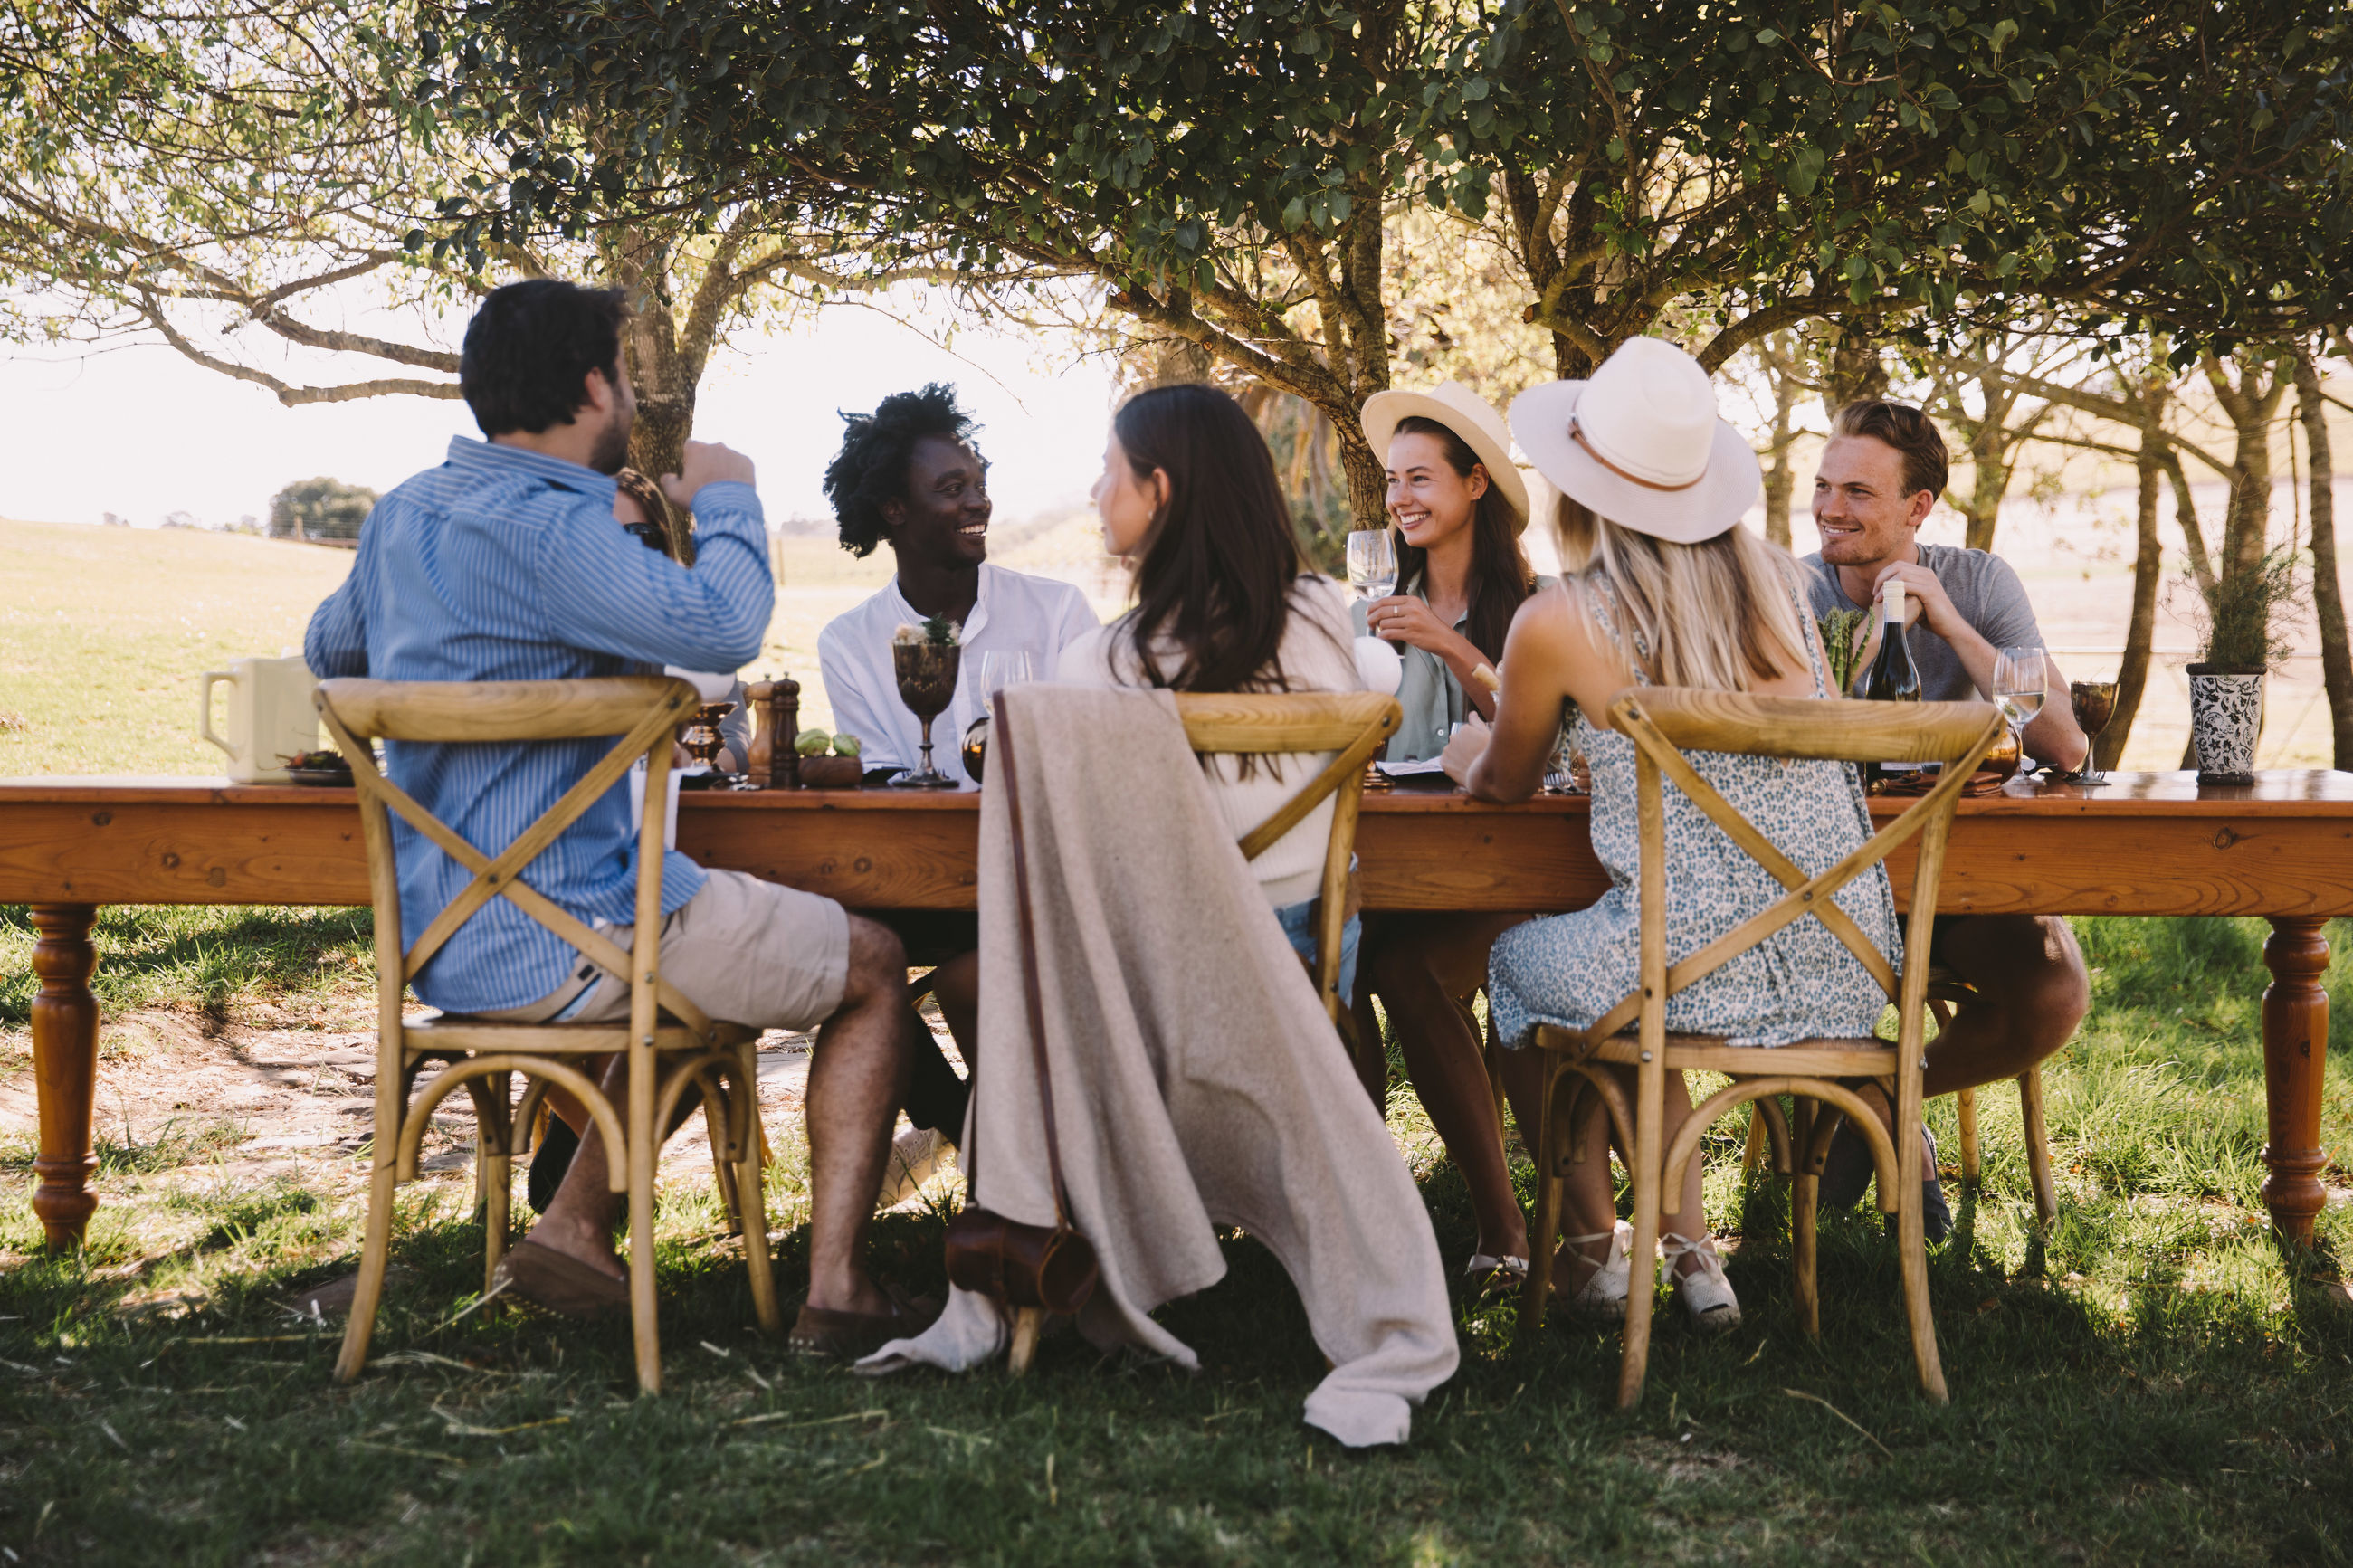 tree, sitting, plant, group of people, leisure activity, real people, seat, lifestyles, young adult, men, nature, casual clothing, people, togetherness, women, young men, land, adult, day, crowd, social gathering, outdoors